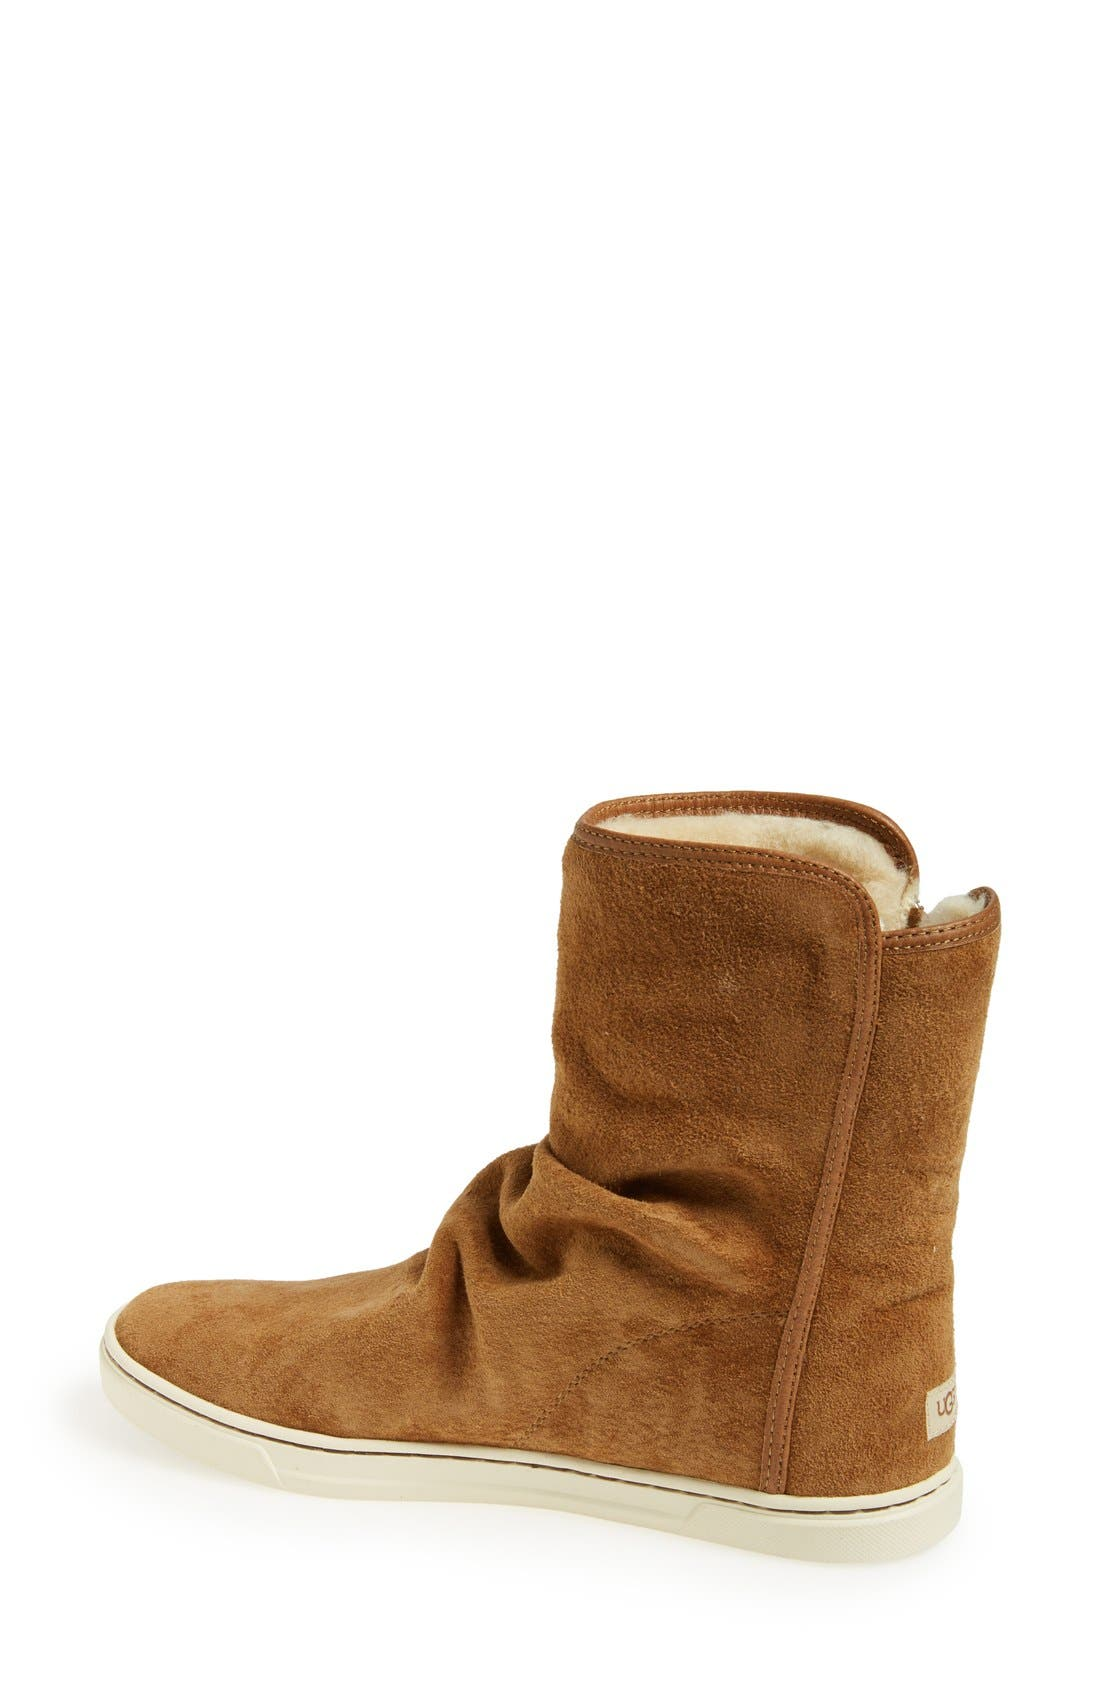 Australia 'Becky' Water Resistant Suede Boot,                             Alternate thumbnail 4, color,